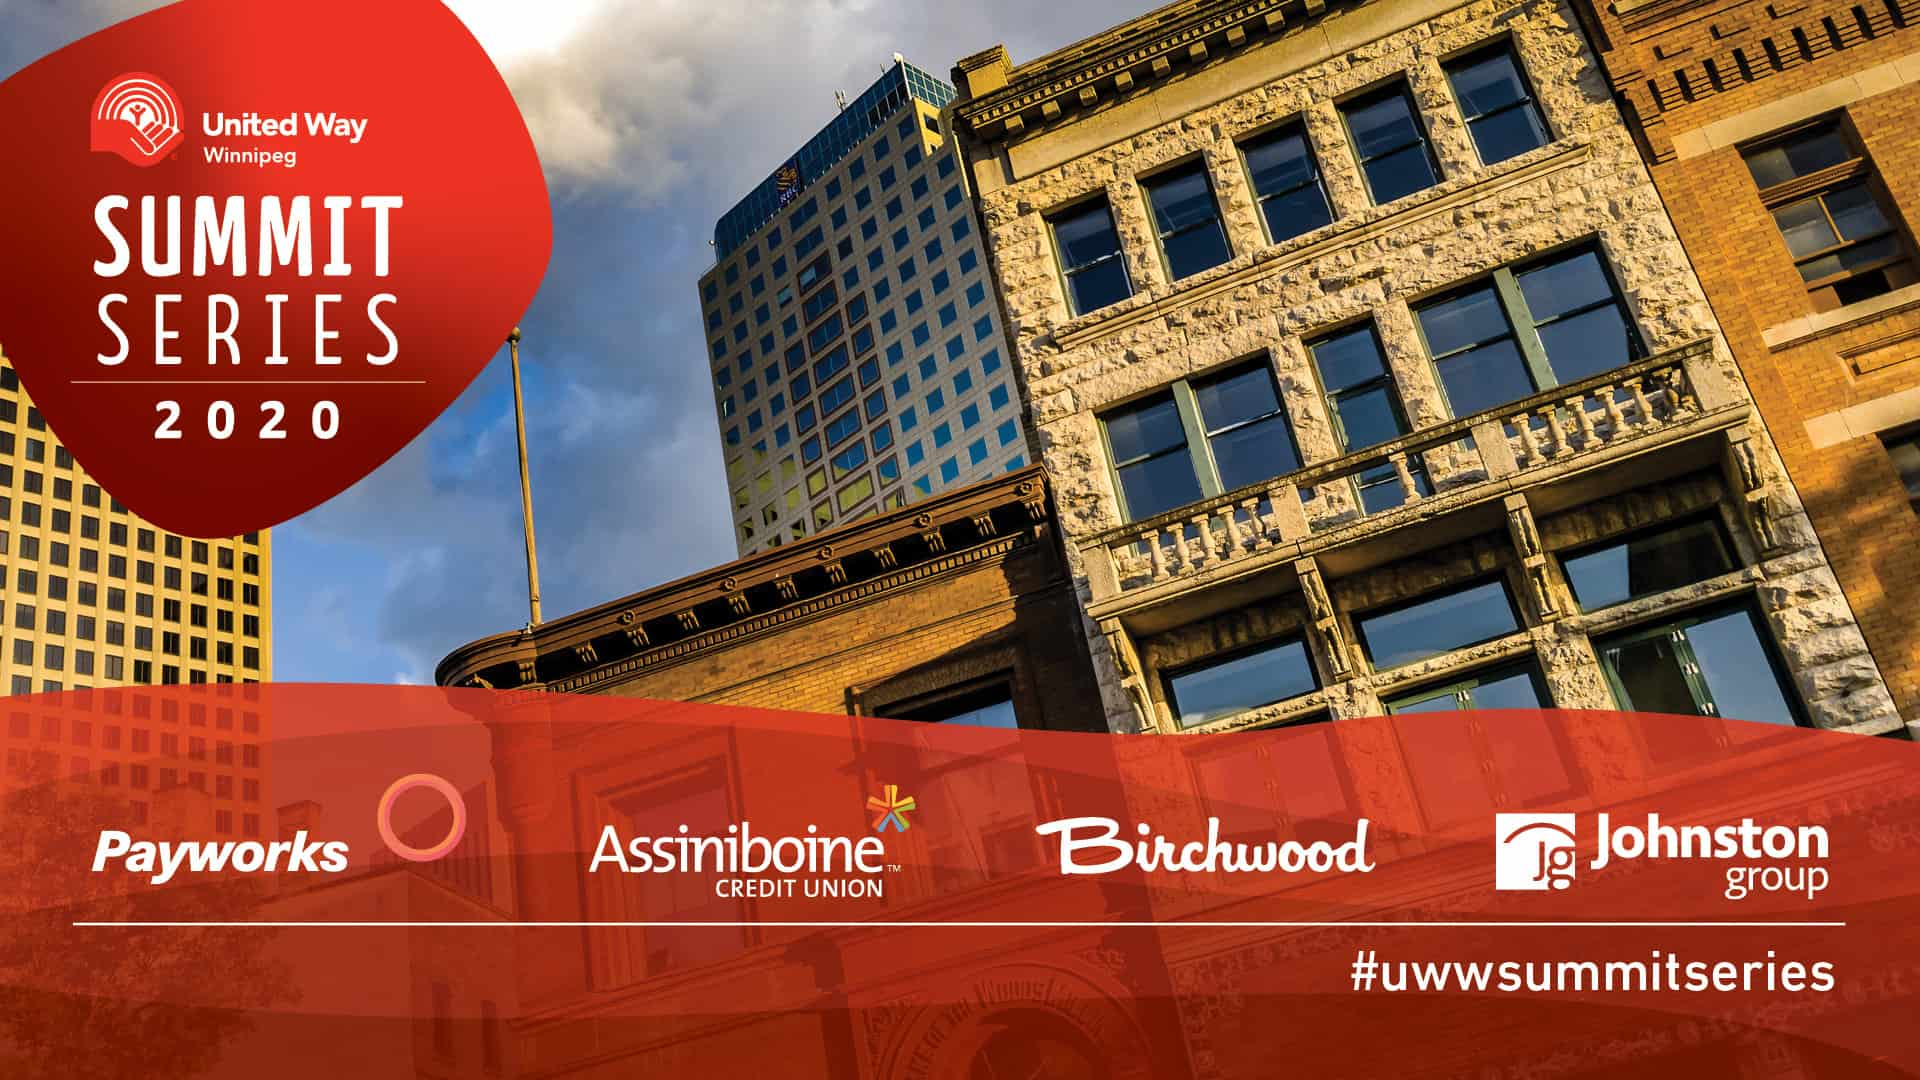 Summit Series United Way Winnipeg advertisement with sponsors Payworks, Assiniboine Credit Union, Birchwood, and Johnston Group